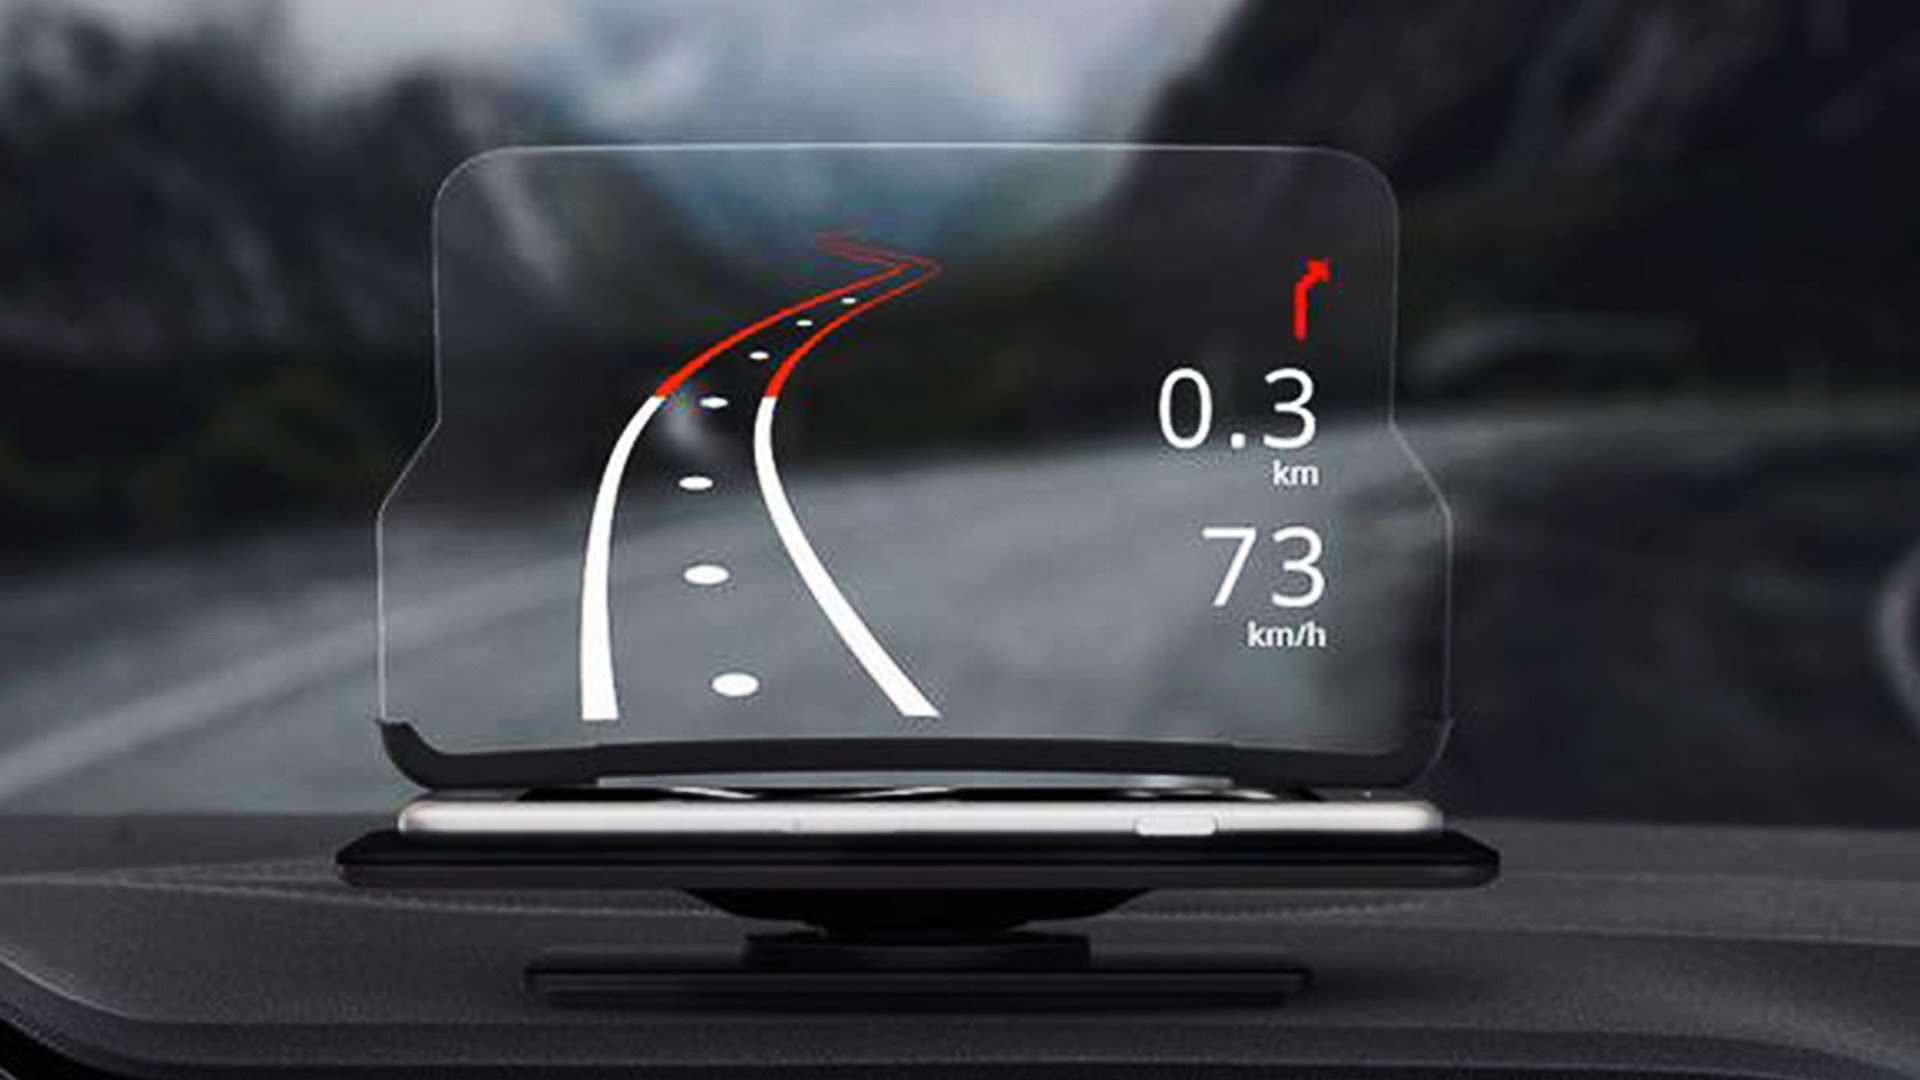 modern-design-of-the-speedometer-of-the-car-interior-accessories-for-swift-ideas-for-the-cars